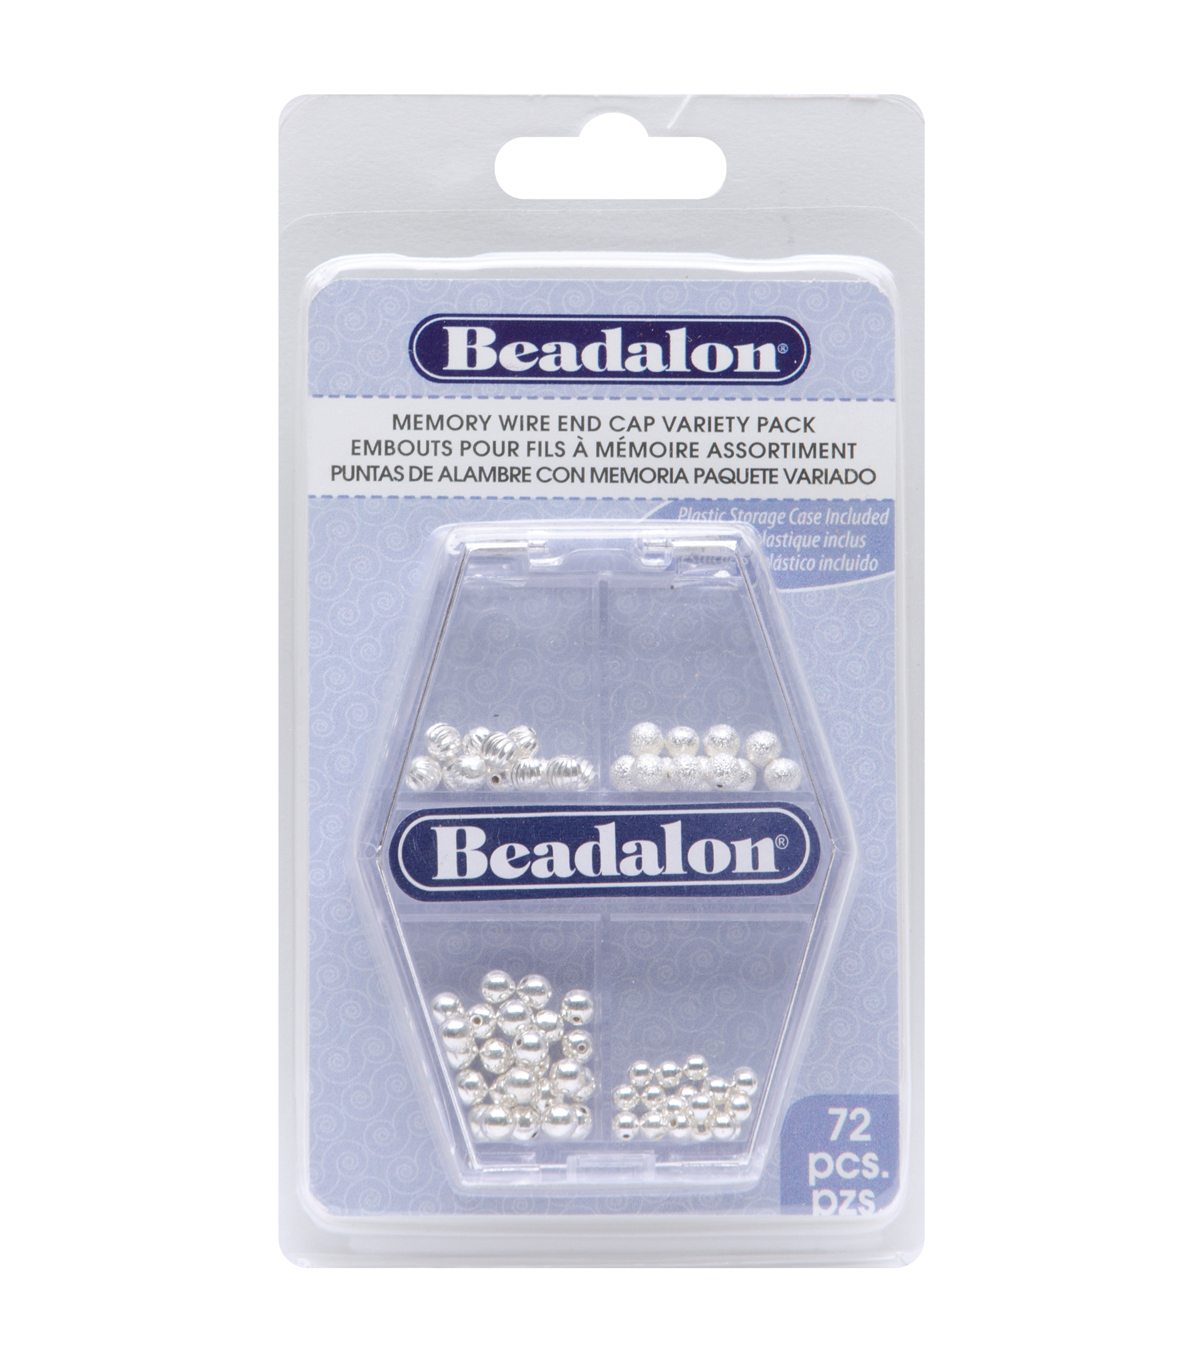 Memory Wire Endcap Variety Pack 72/Pkg-Silver